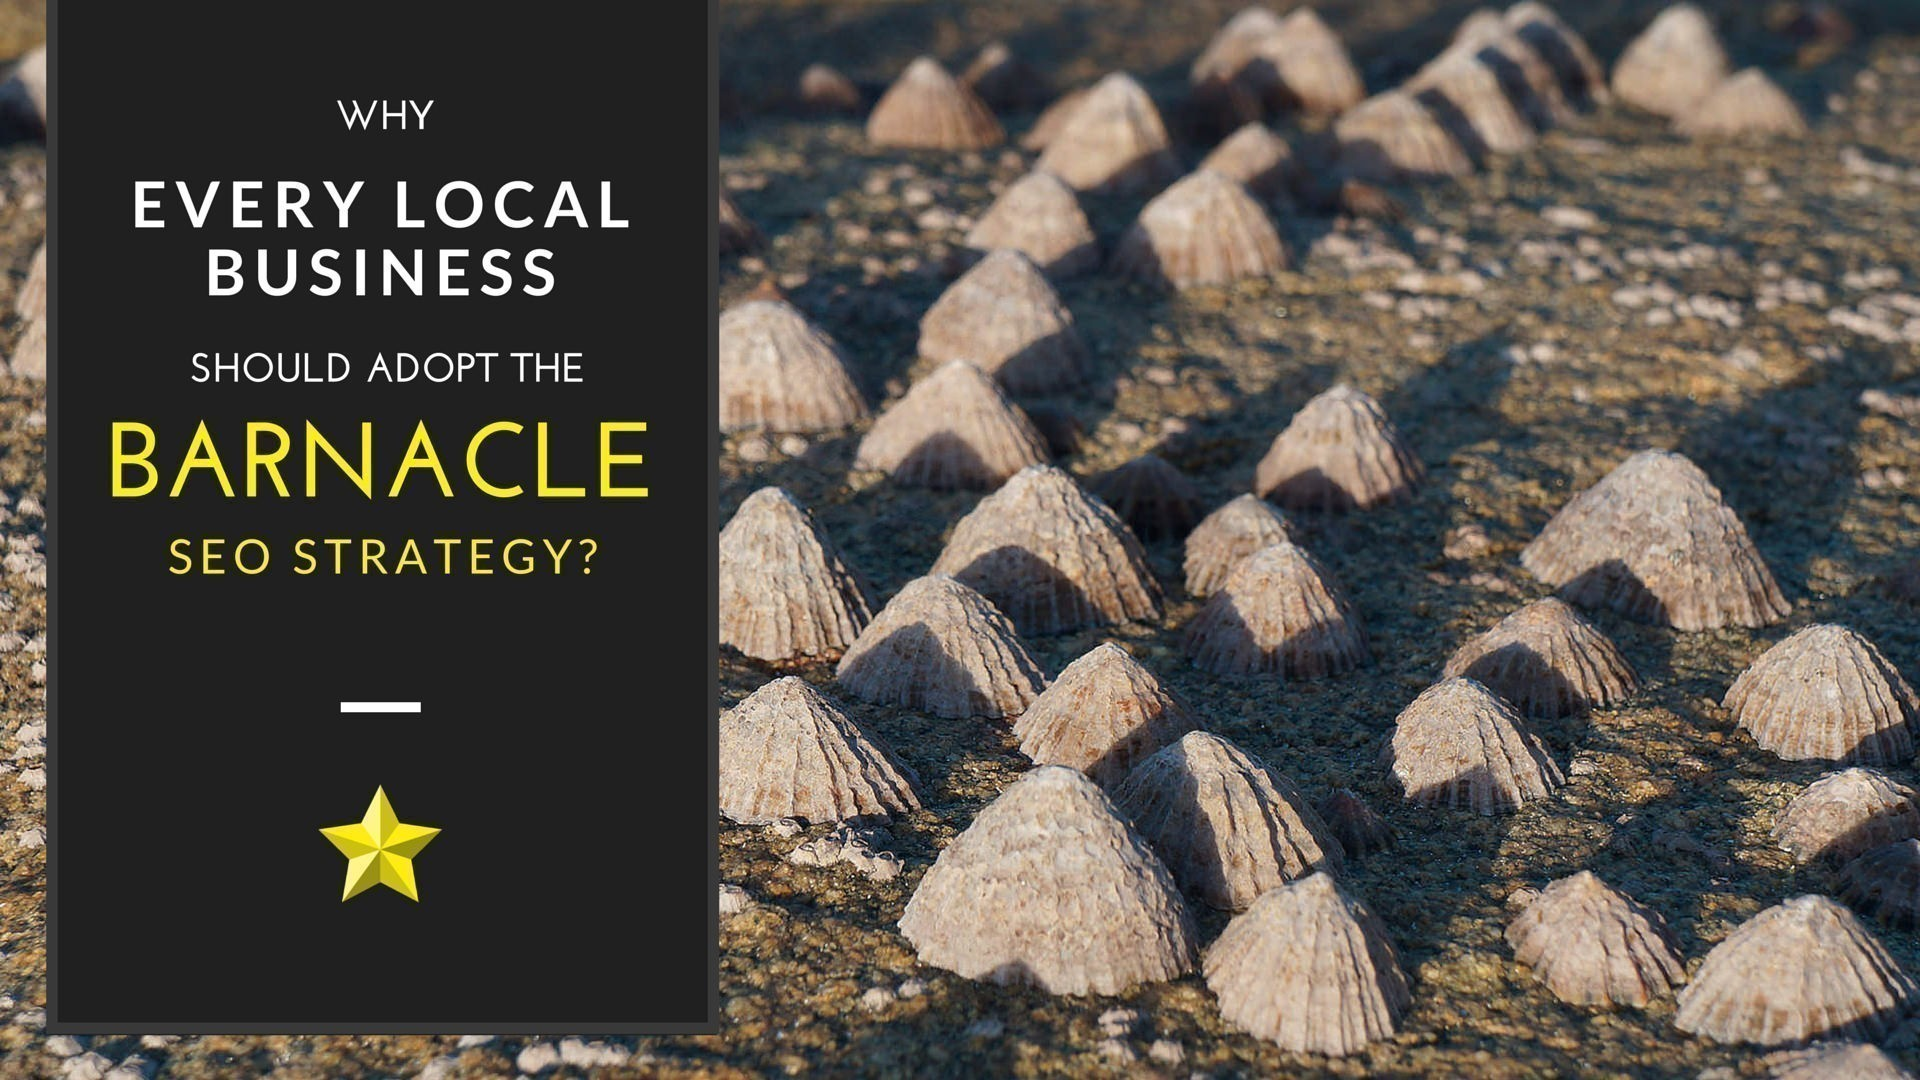 Why every Local Business should adopt the Barnacle SEO Strategy?